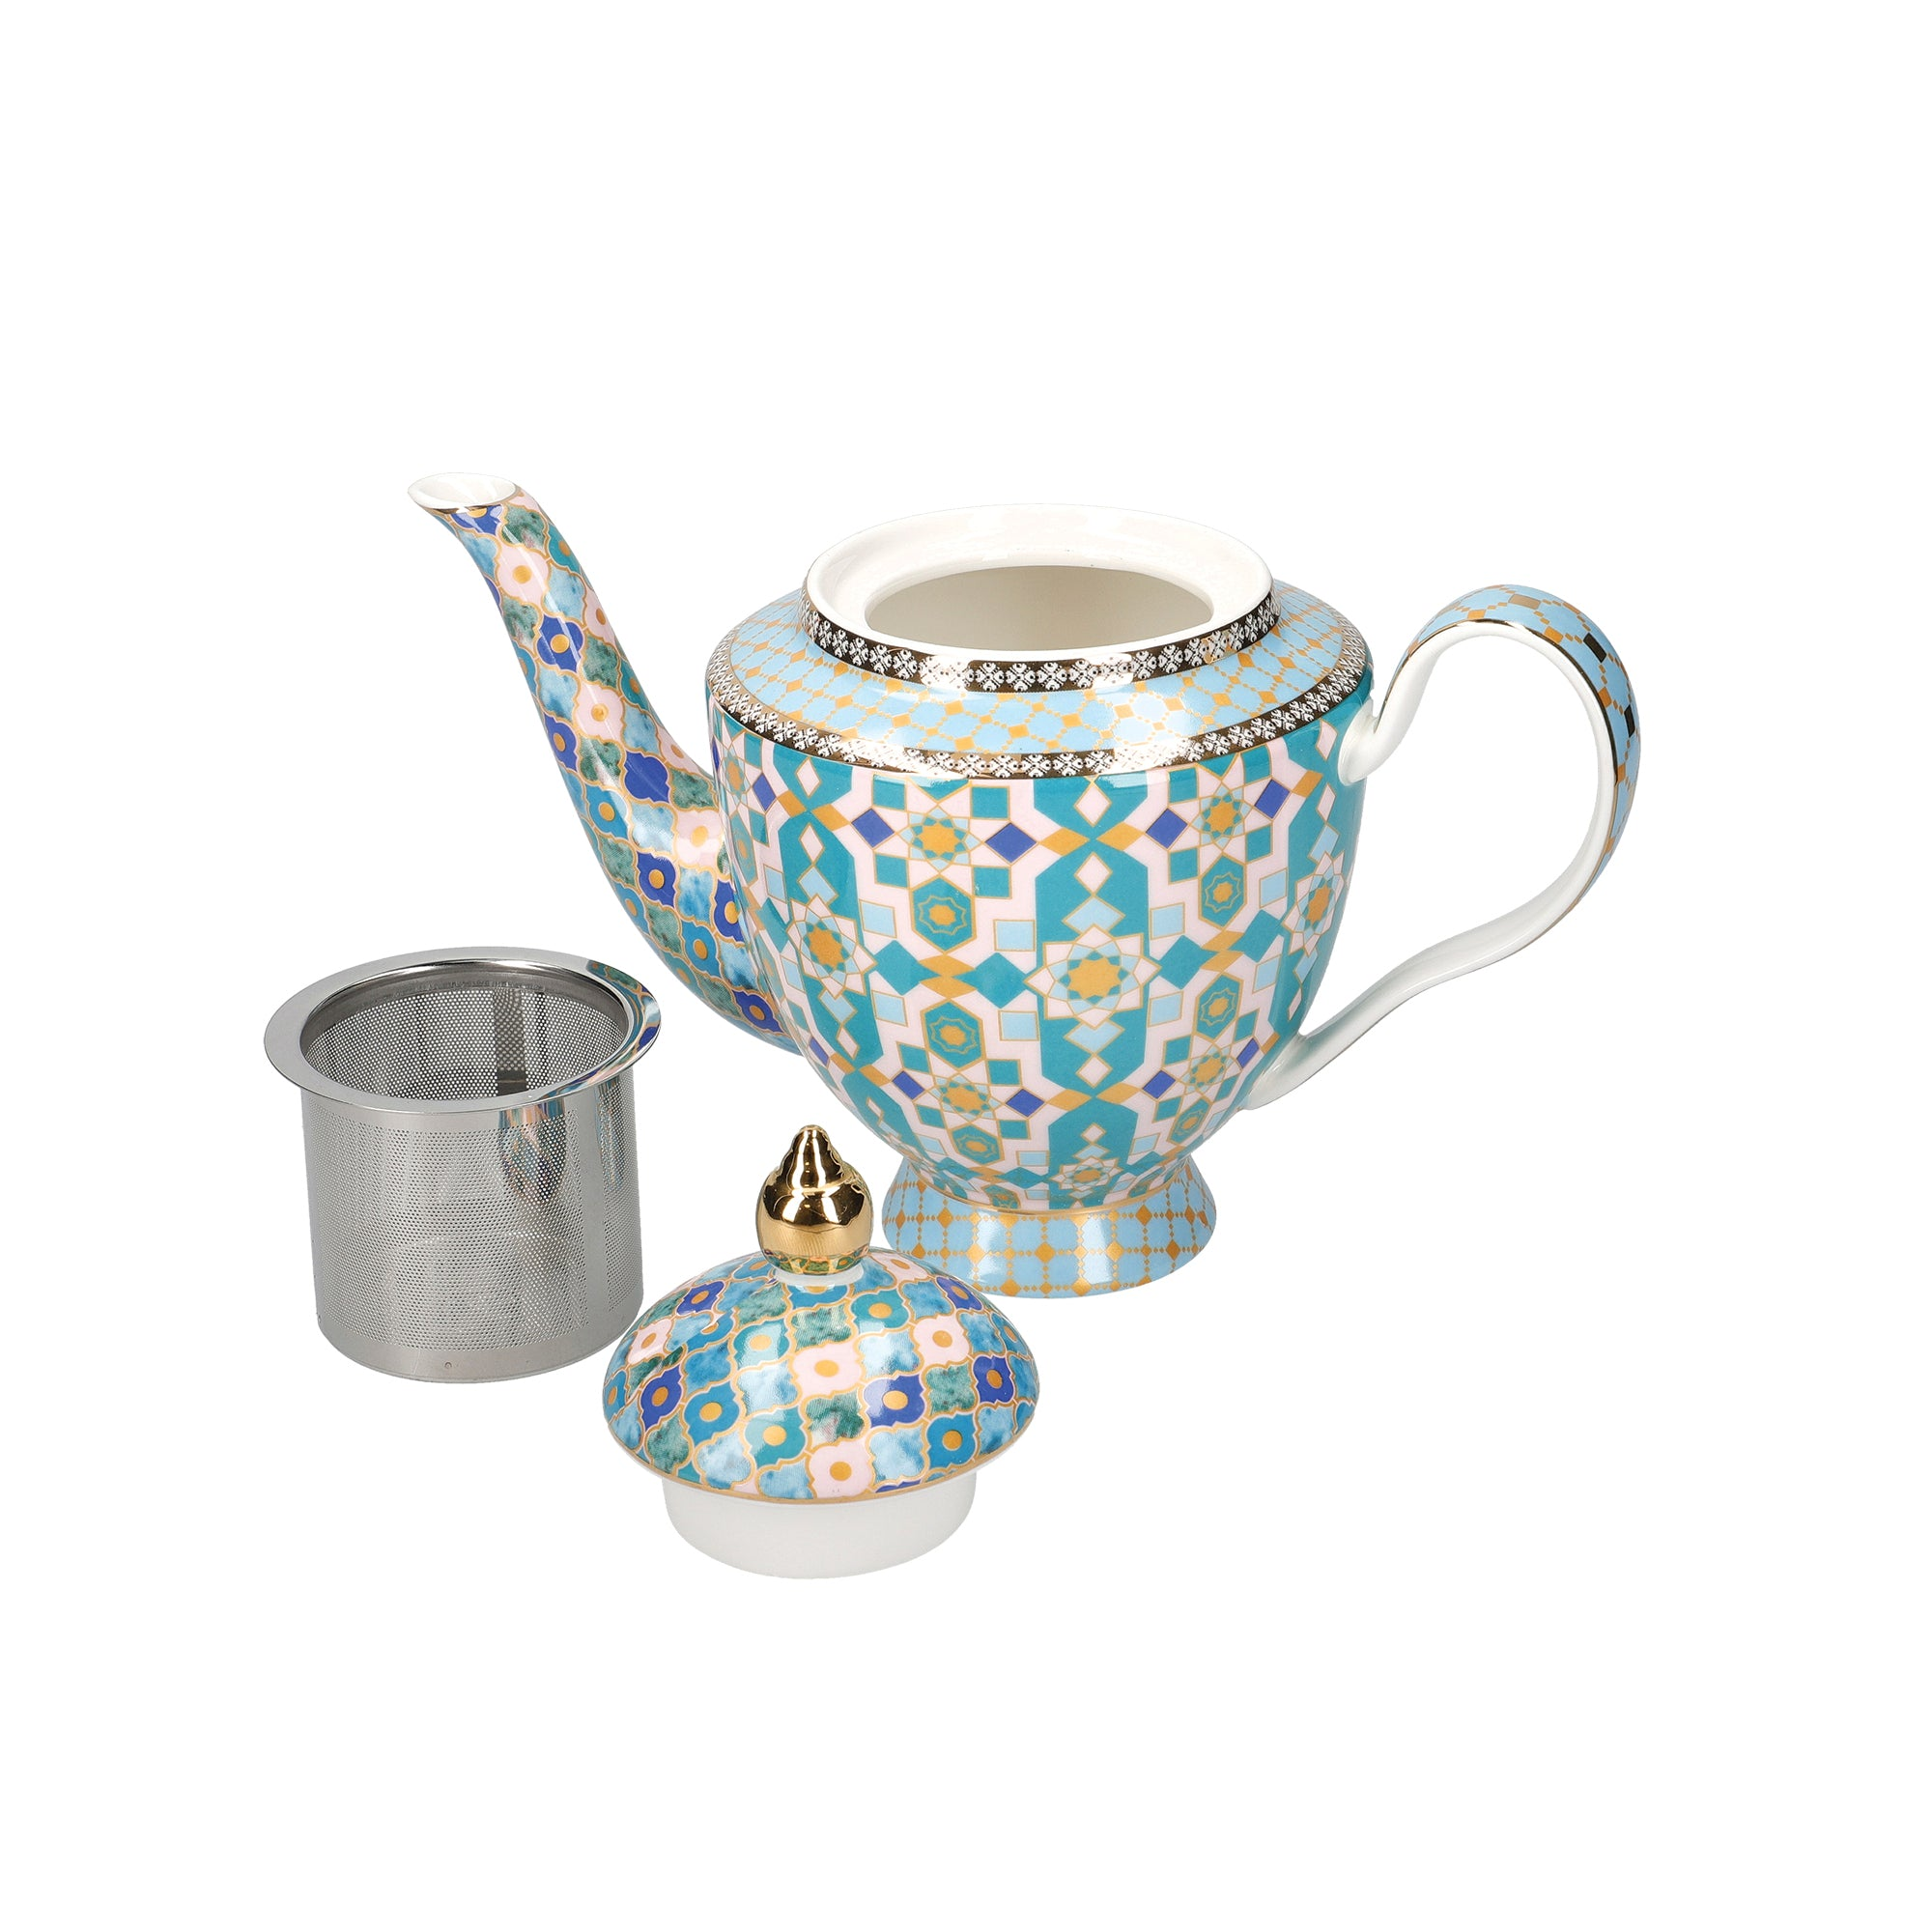 Teas & C's Kasbah Mint Teapot with Infuser